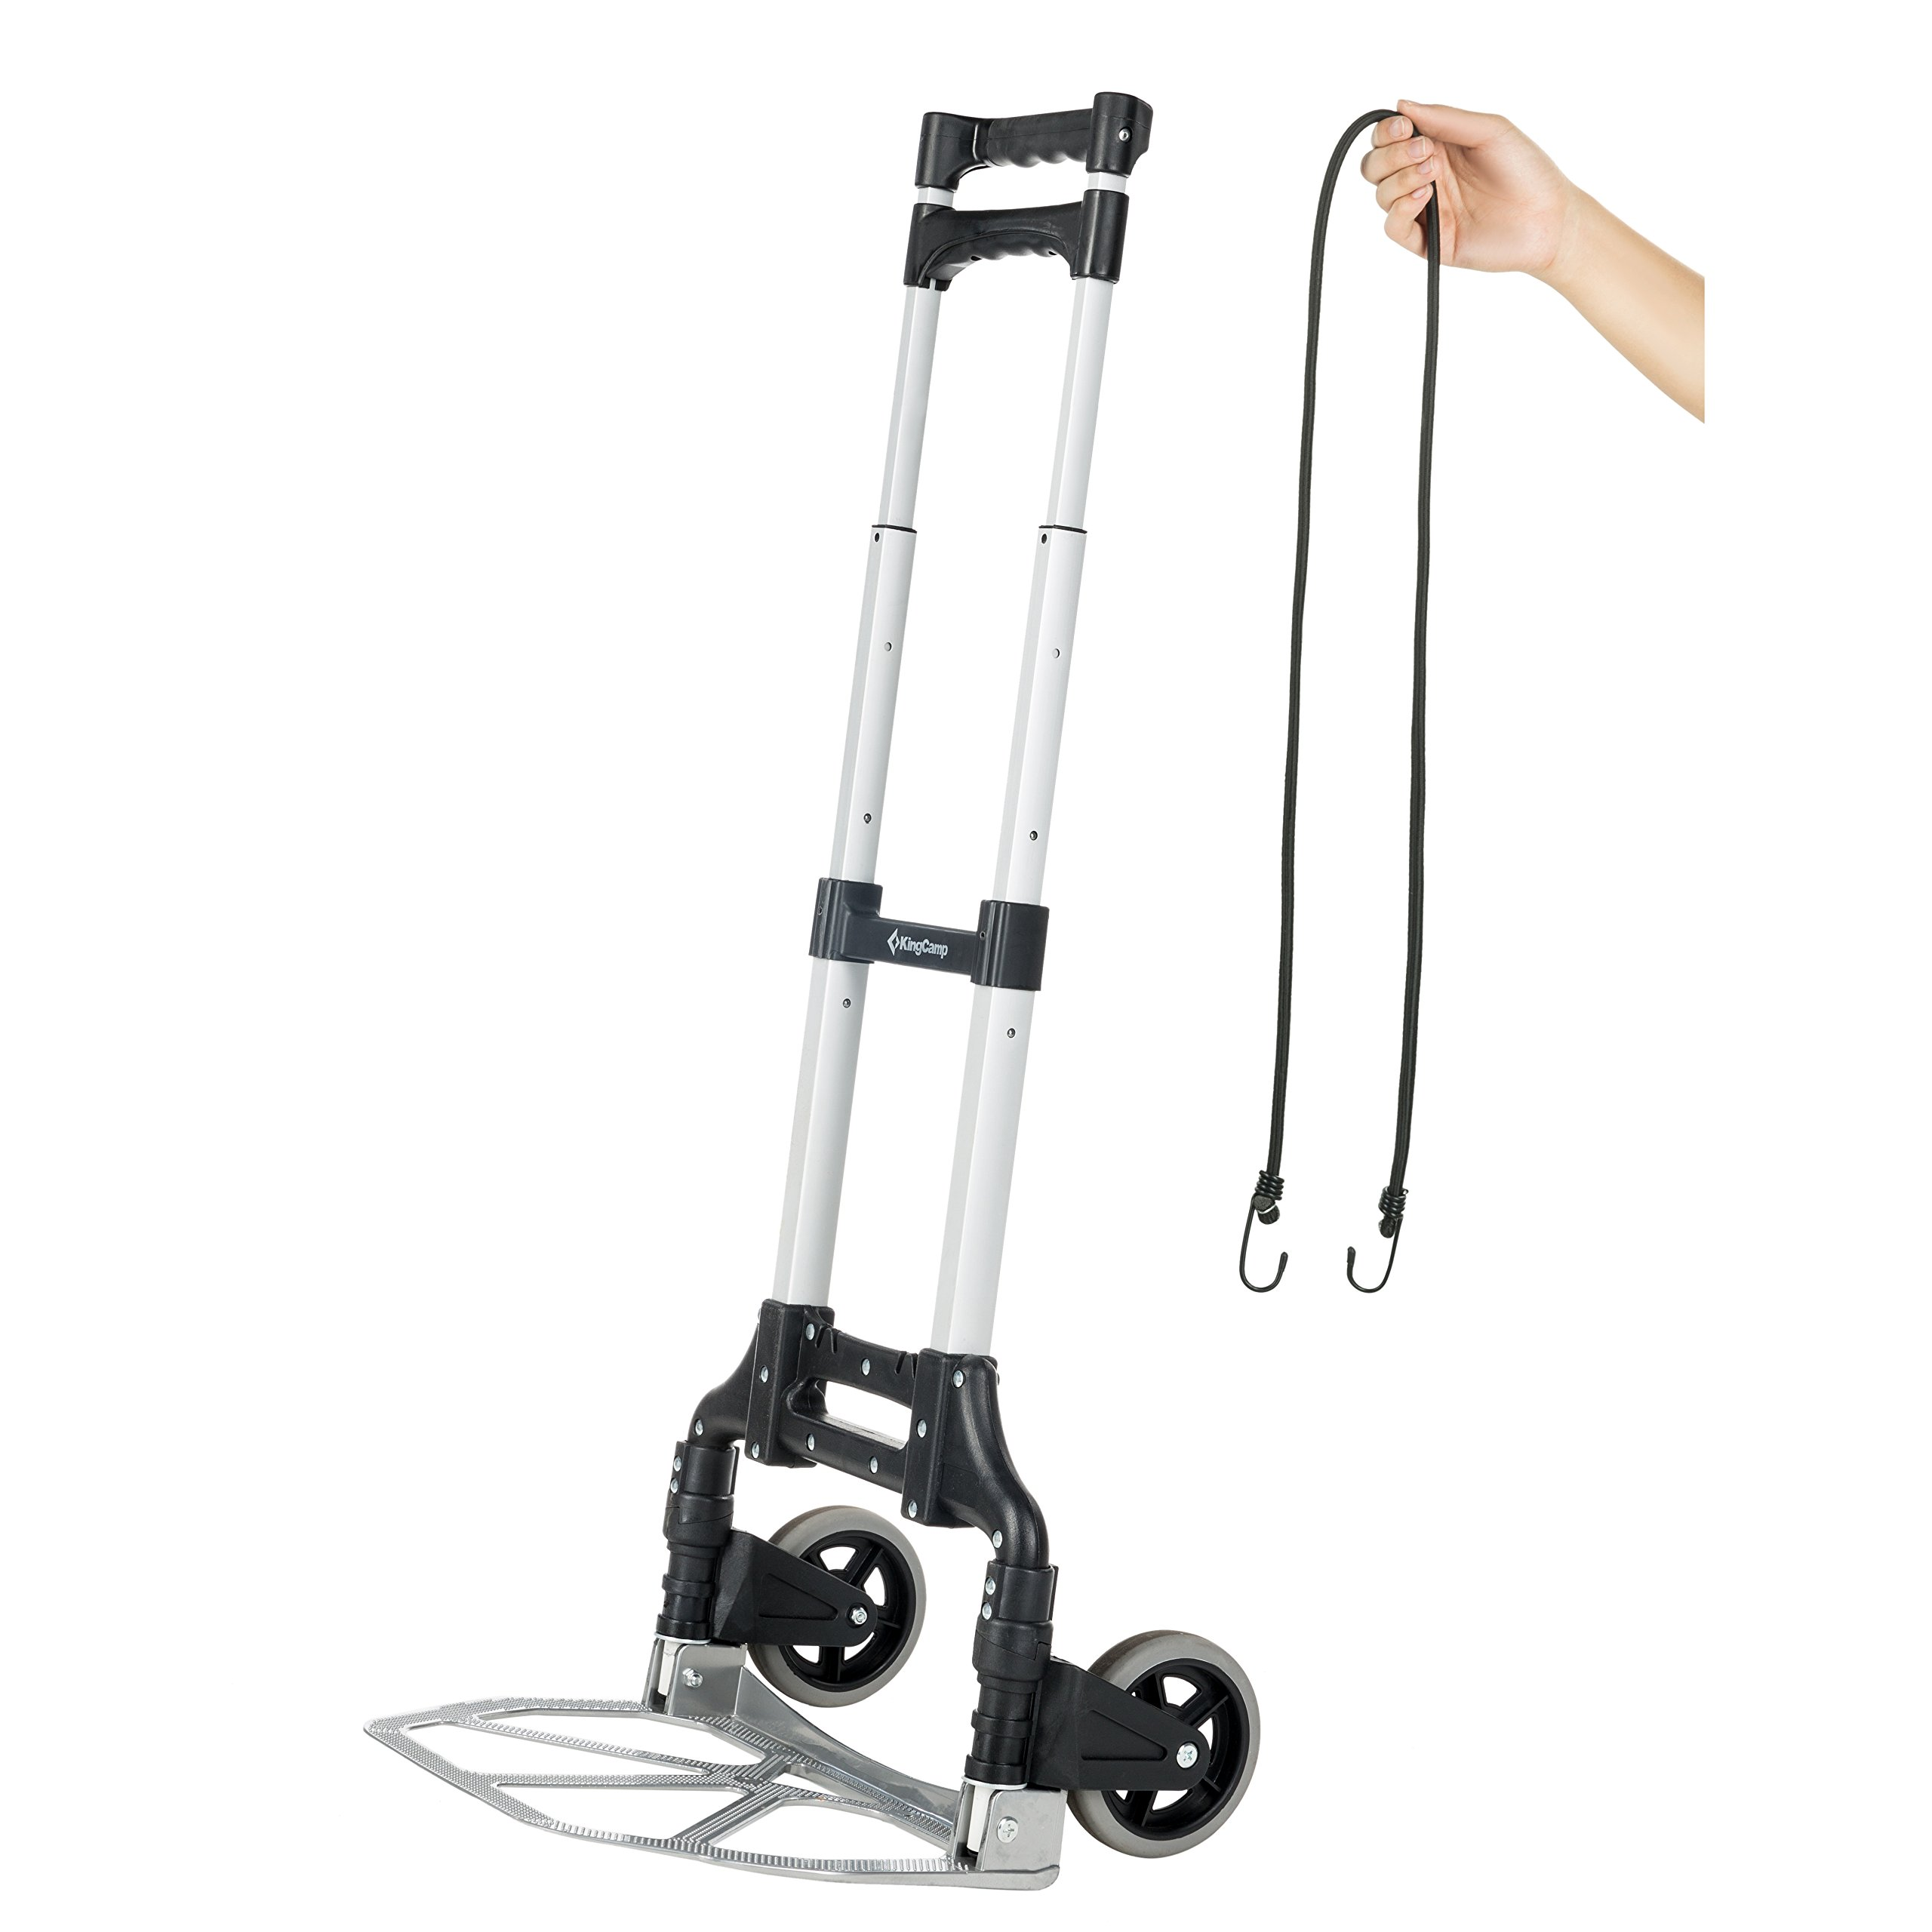 KingCamp Folding Cart 150 lbs Capacity Hand Truck with Bungee Cord